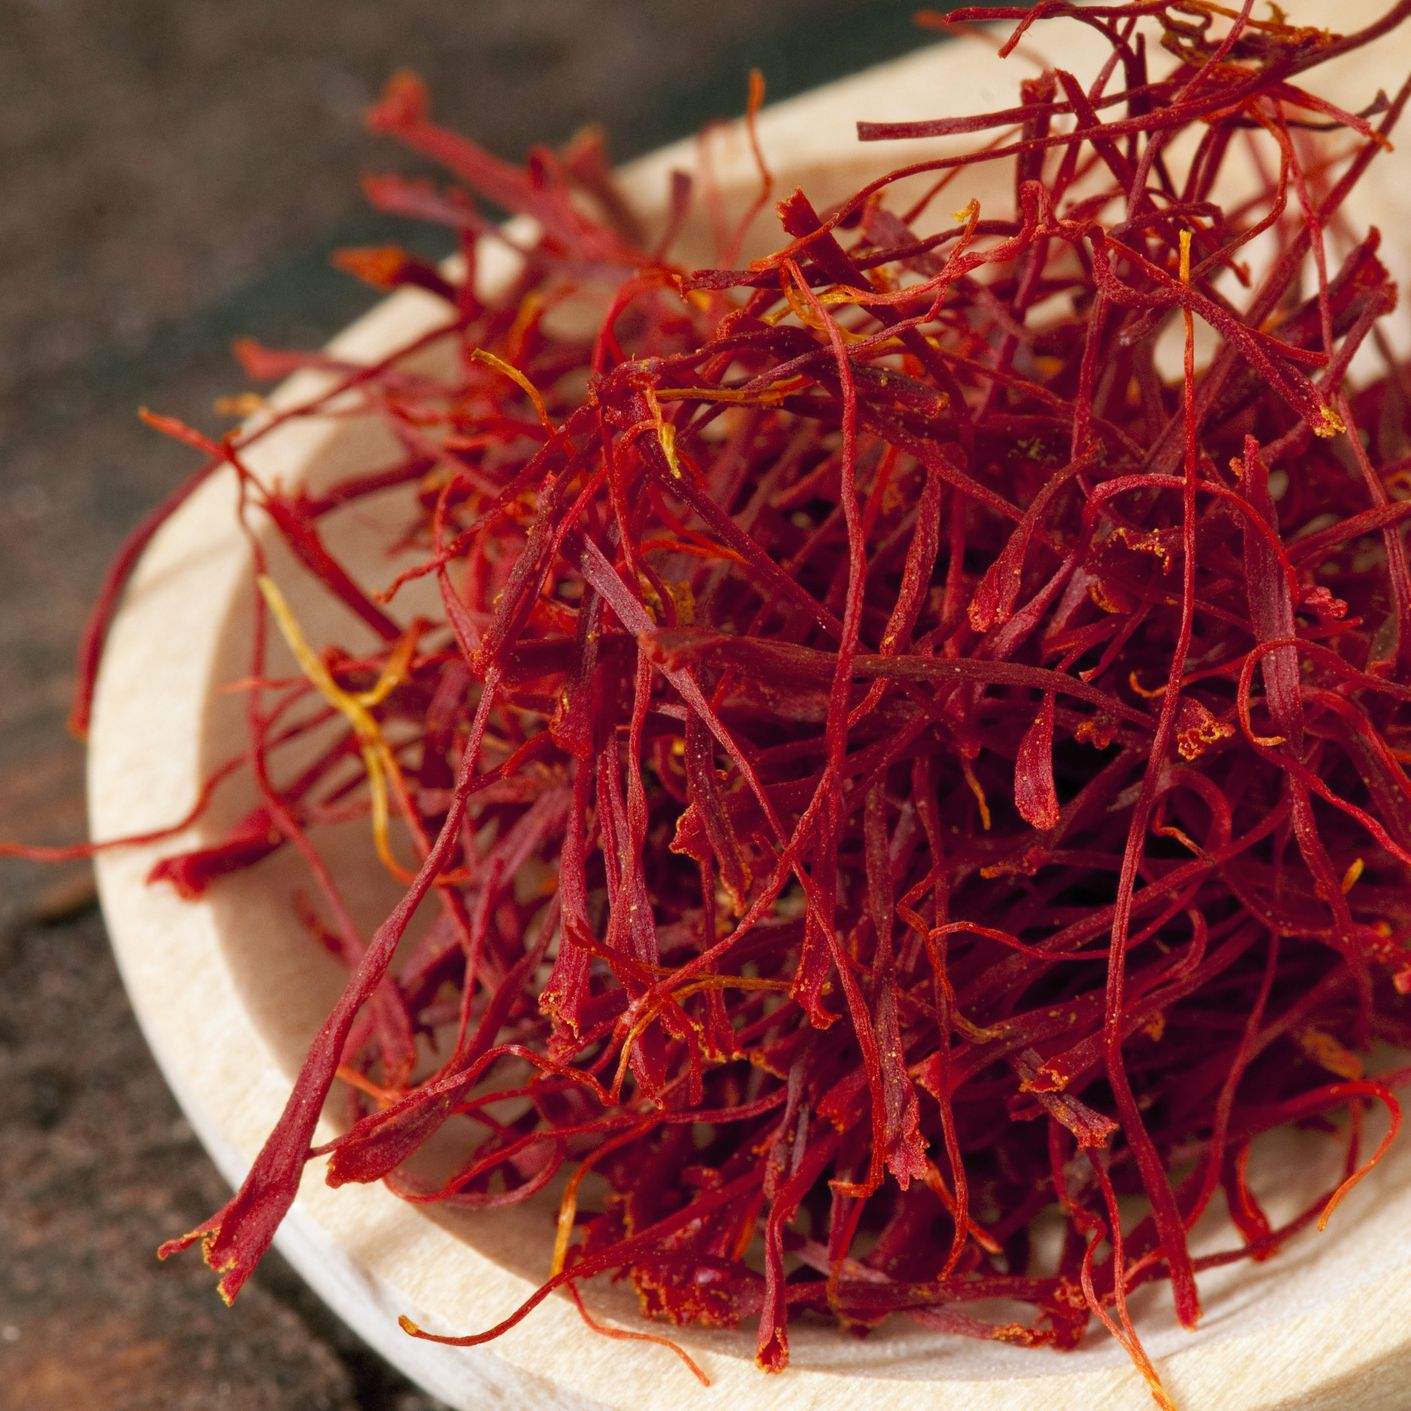 Saffron Benefits Side Effects And Preparations